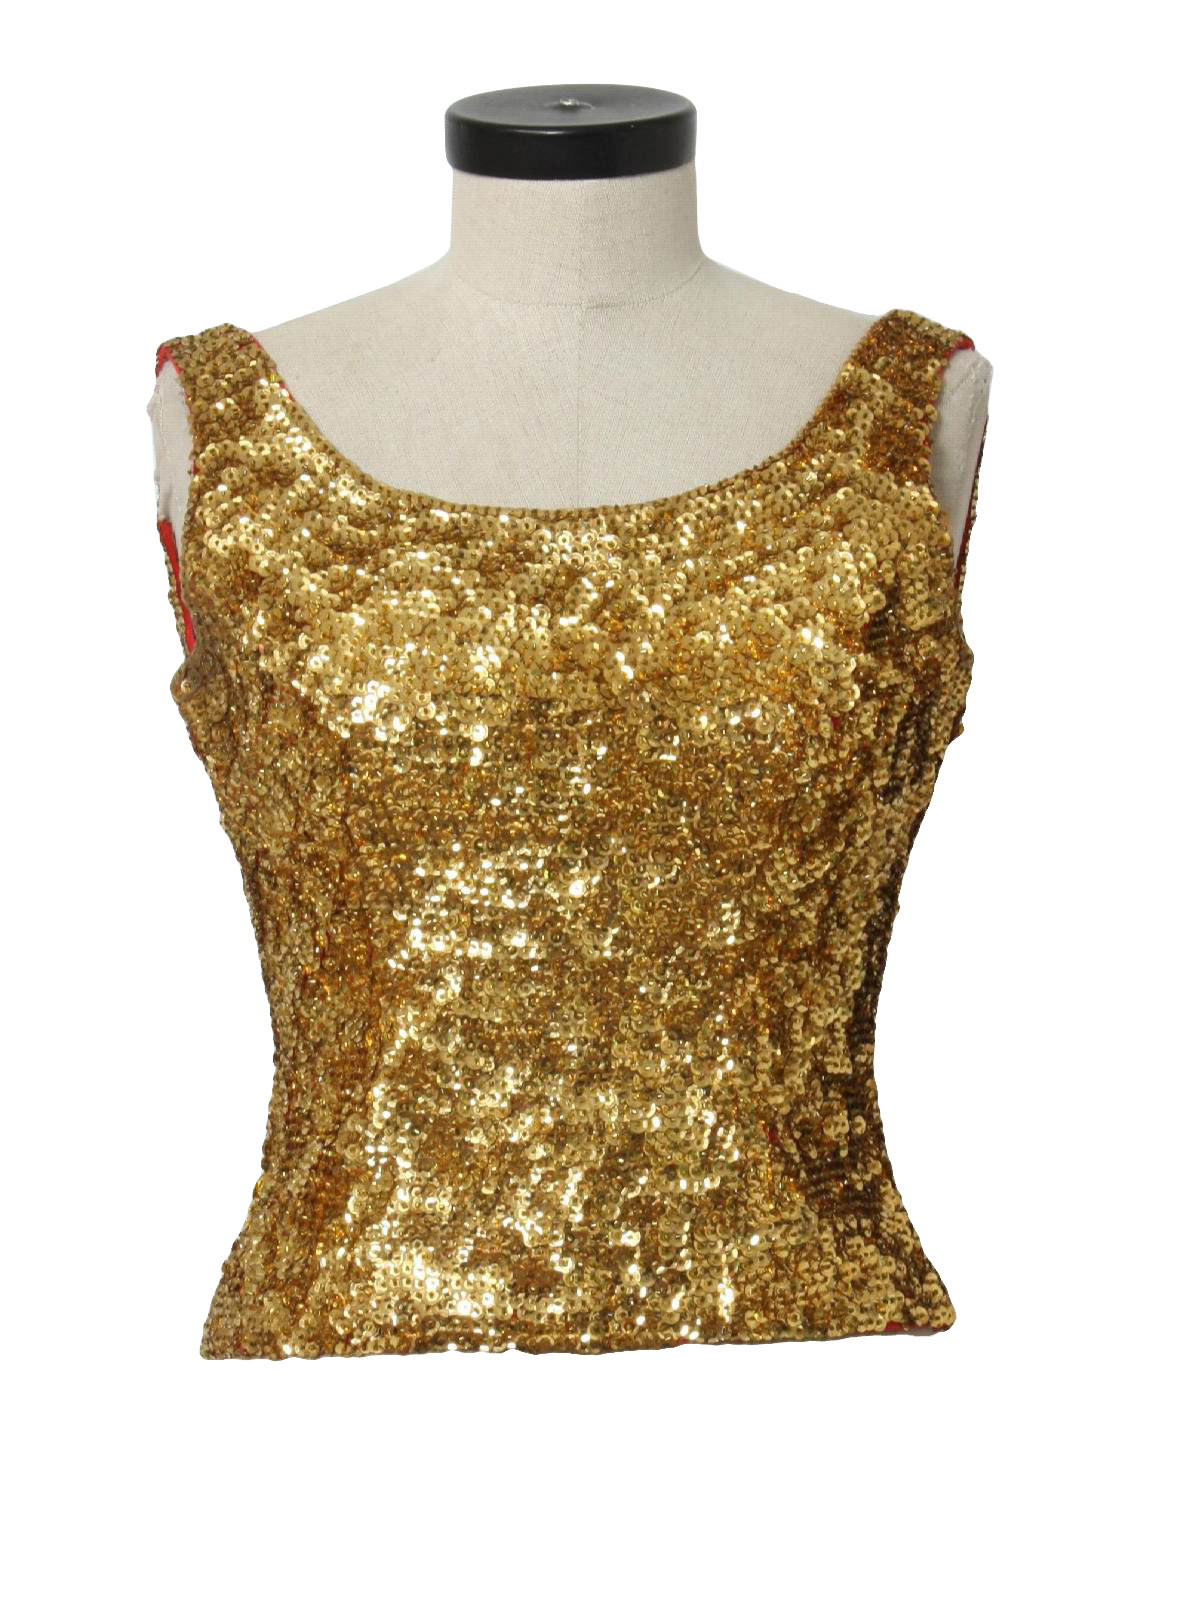 Images of Ladies Gold Blouse - Reikian